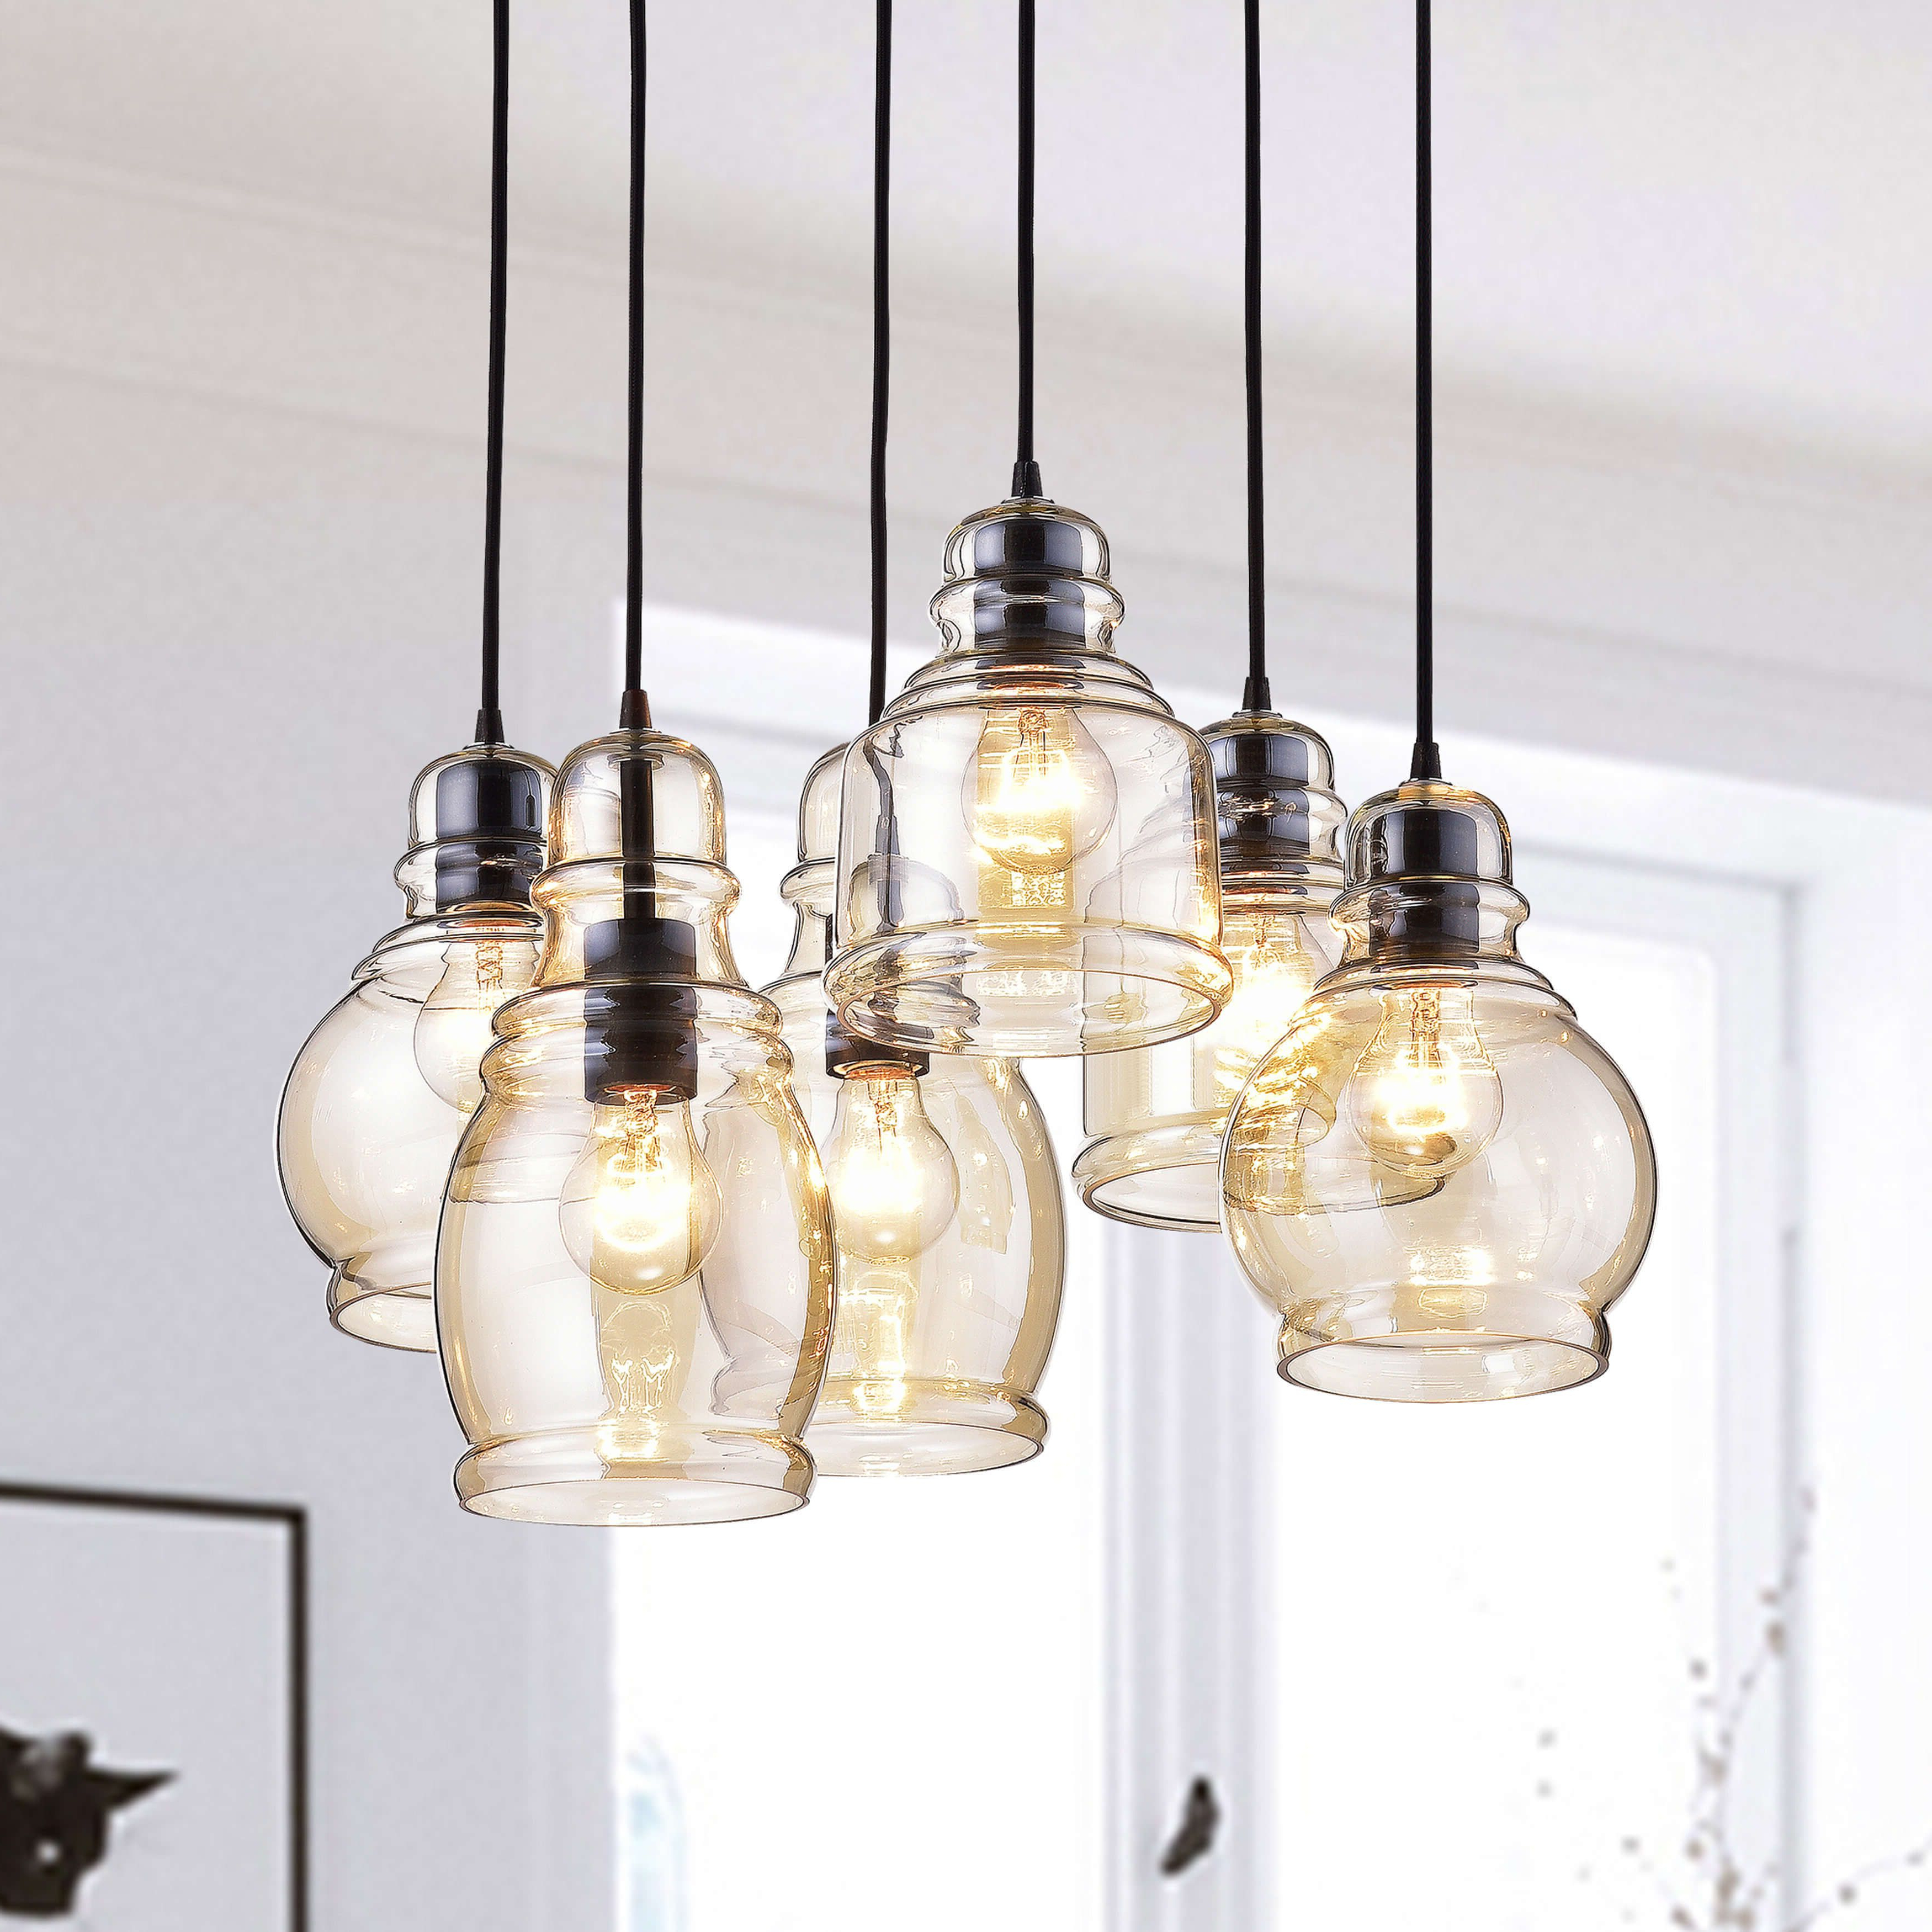 Most Recent Pruett Cognac Glass 8 Light Cluster Pendants Throughout Mariana Cognac Glass Antique Black Rectangular Base 6 Light (View 9 of 20)